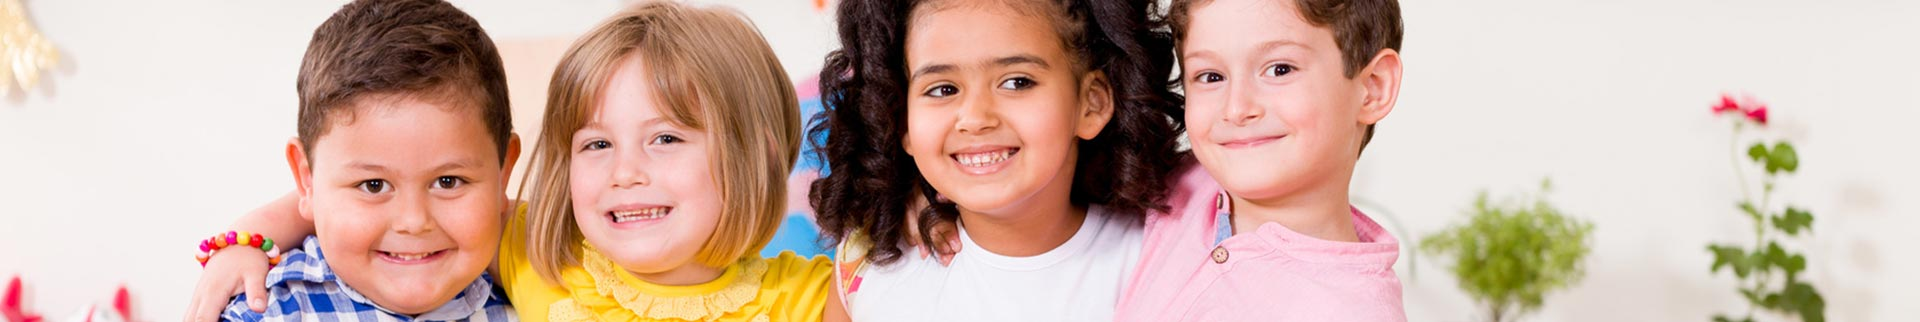 Early Childhood Education Research